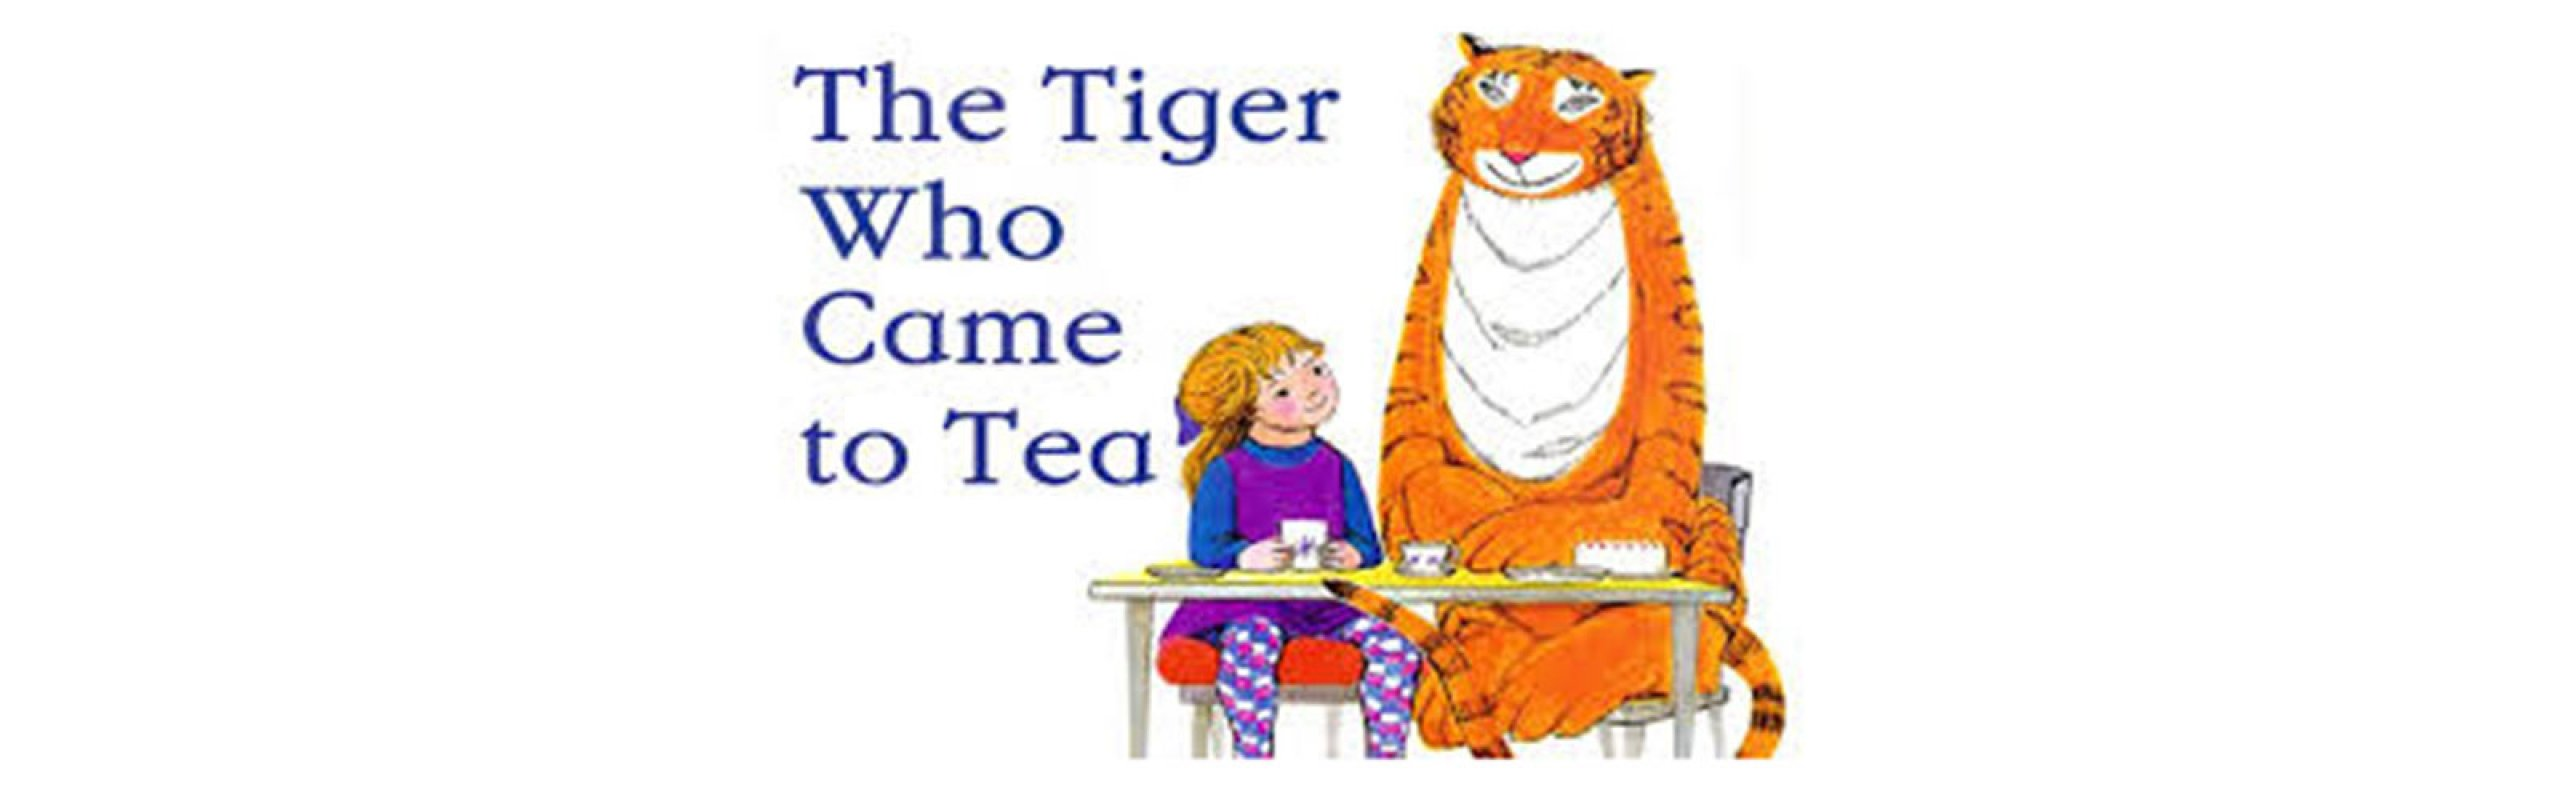 It's Storytime! The Tiger Who Came to Tea by Judith Kerr